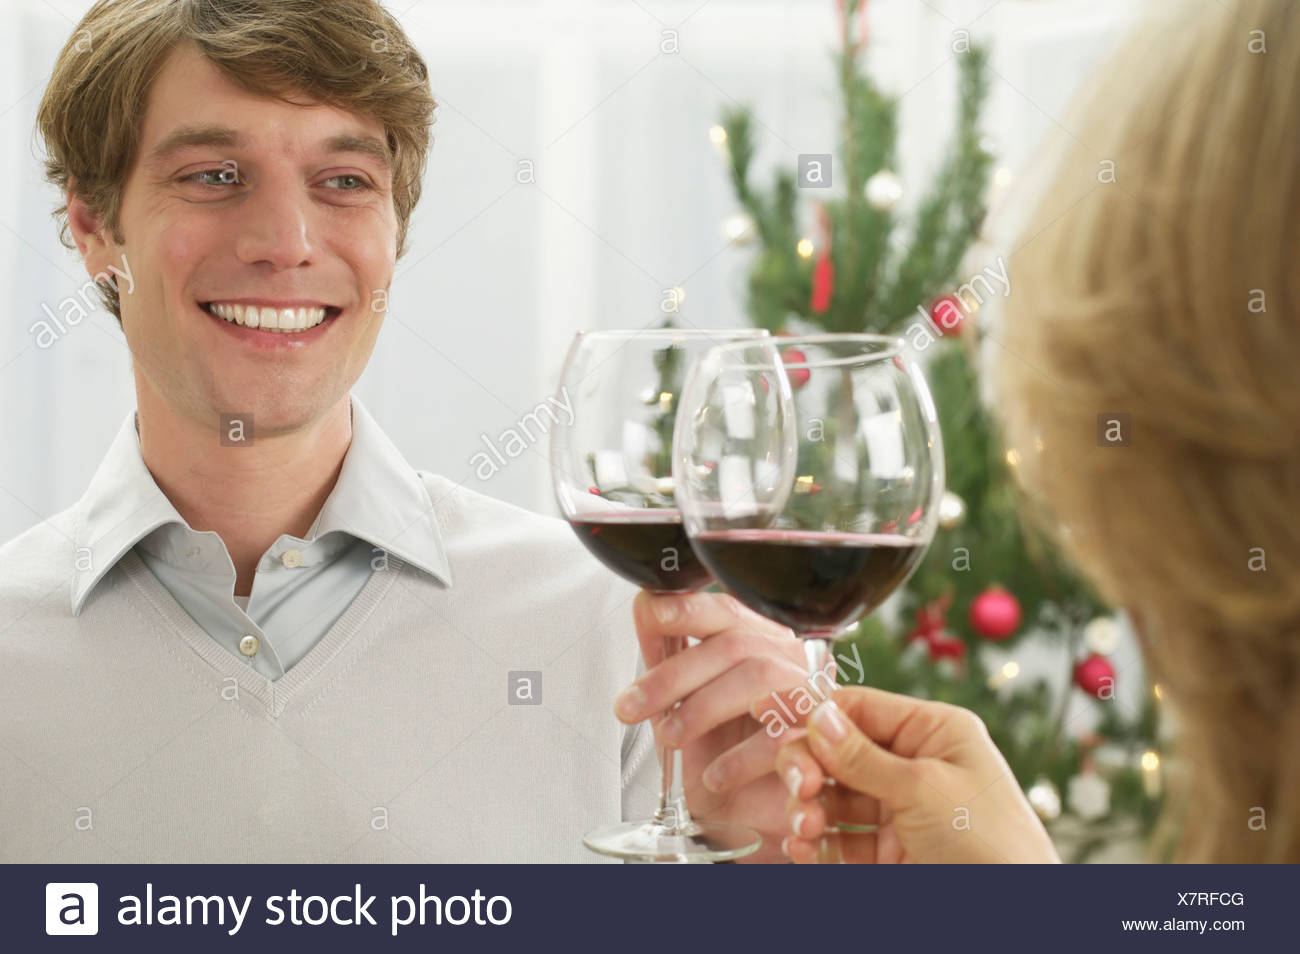 Two people chinking red wine glasses - Stock Image